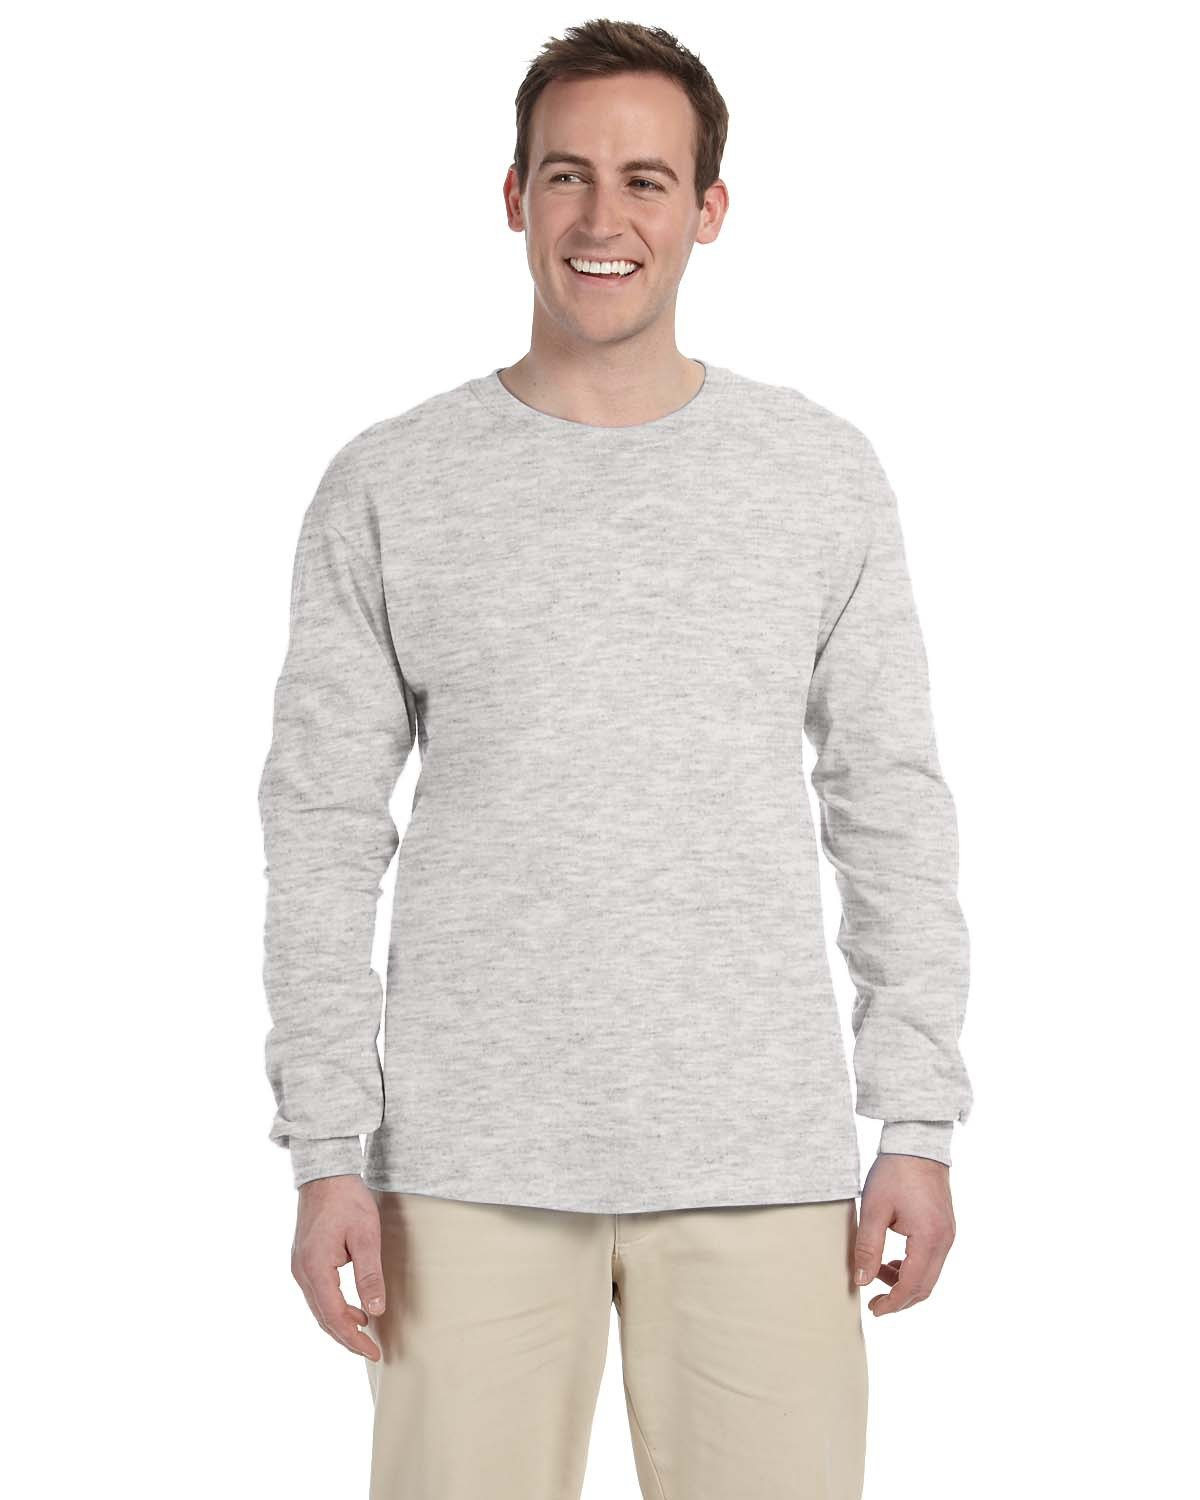 Fruit of the Loom Adult HD Cotton™ Long-Sleeve T-Shirt ASH